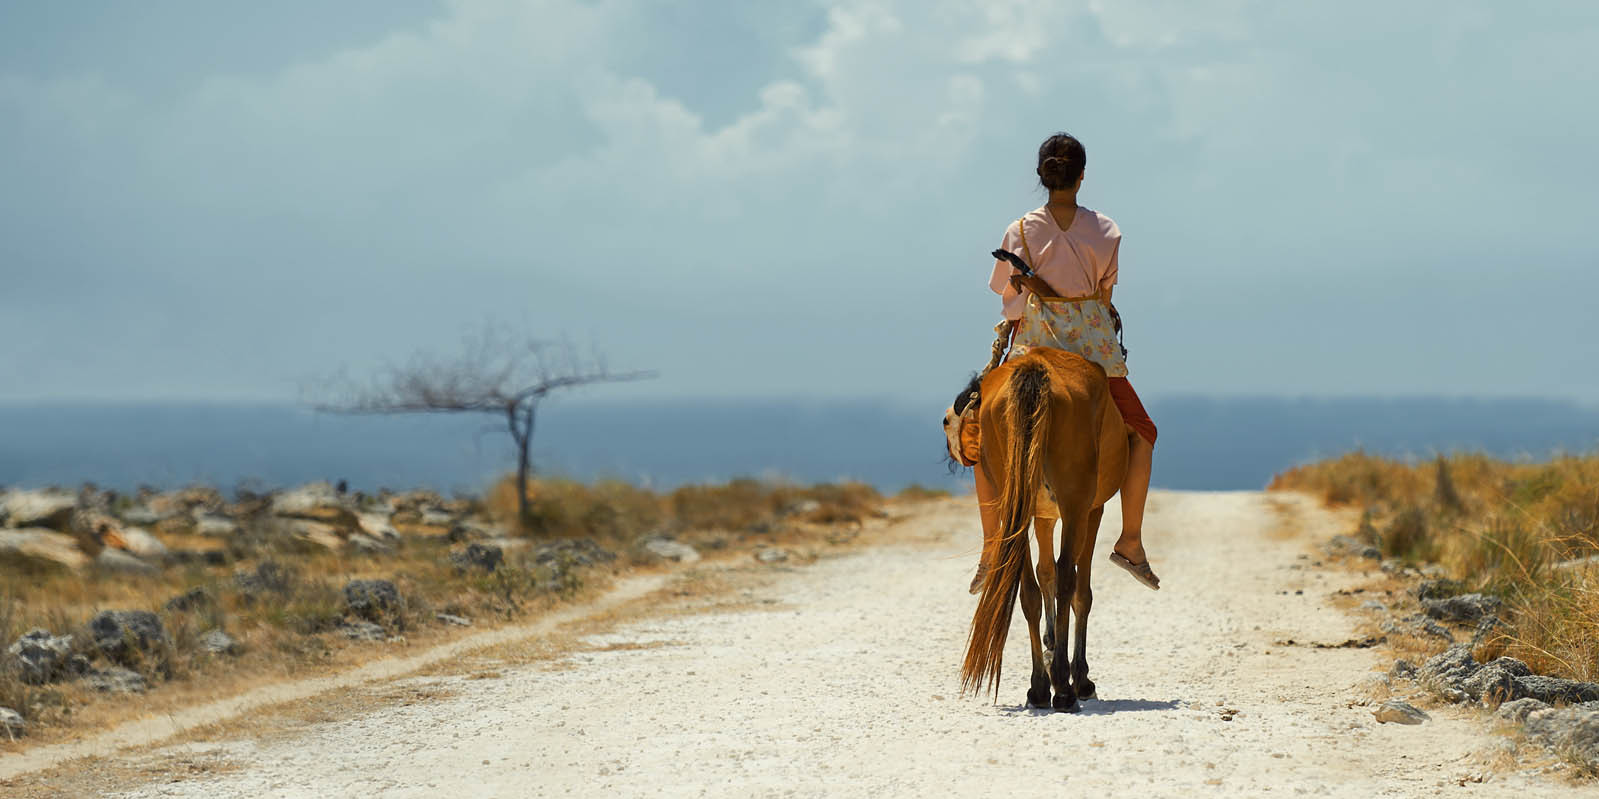 "Extrait du film indonésien ""Marlina la tueuse, en quatre actes"" de la réalisatrice Mouly Surya. (Source : Culture Box)"